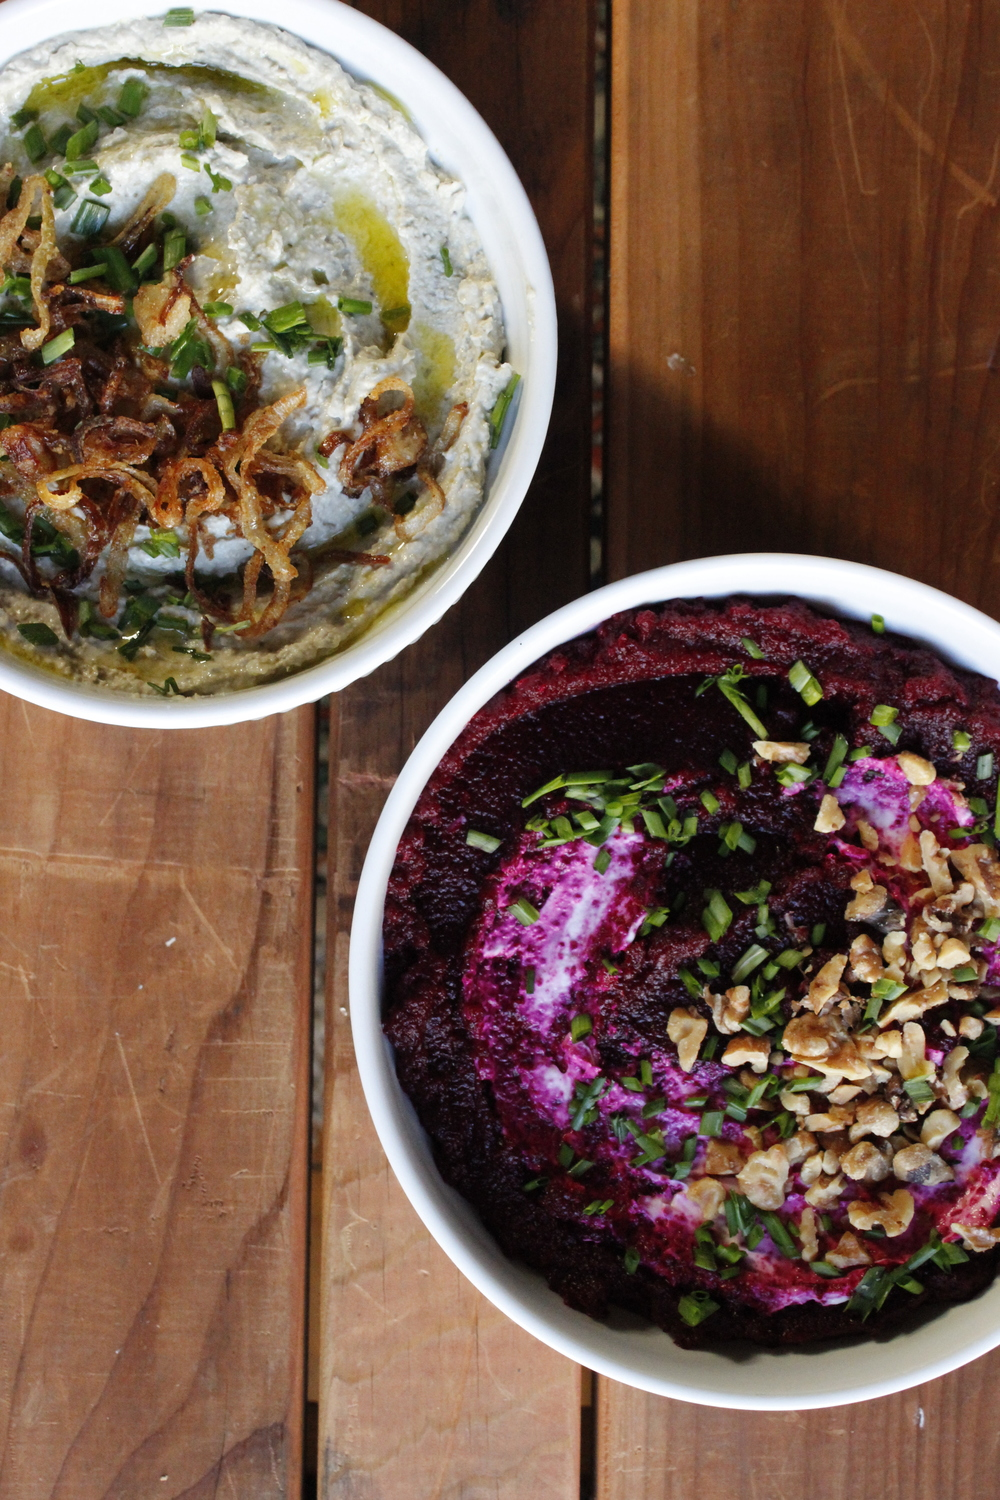 Mung bean hummus (left) and beet caviar